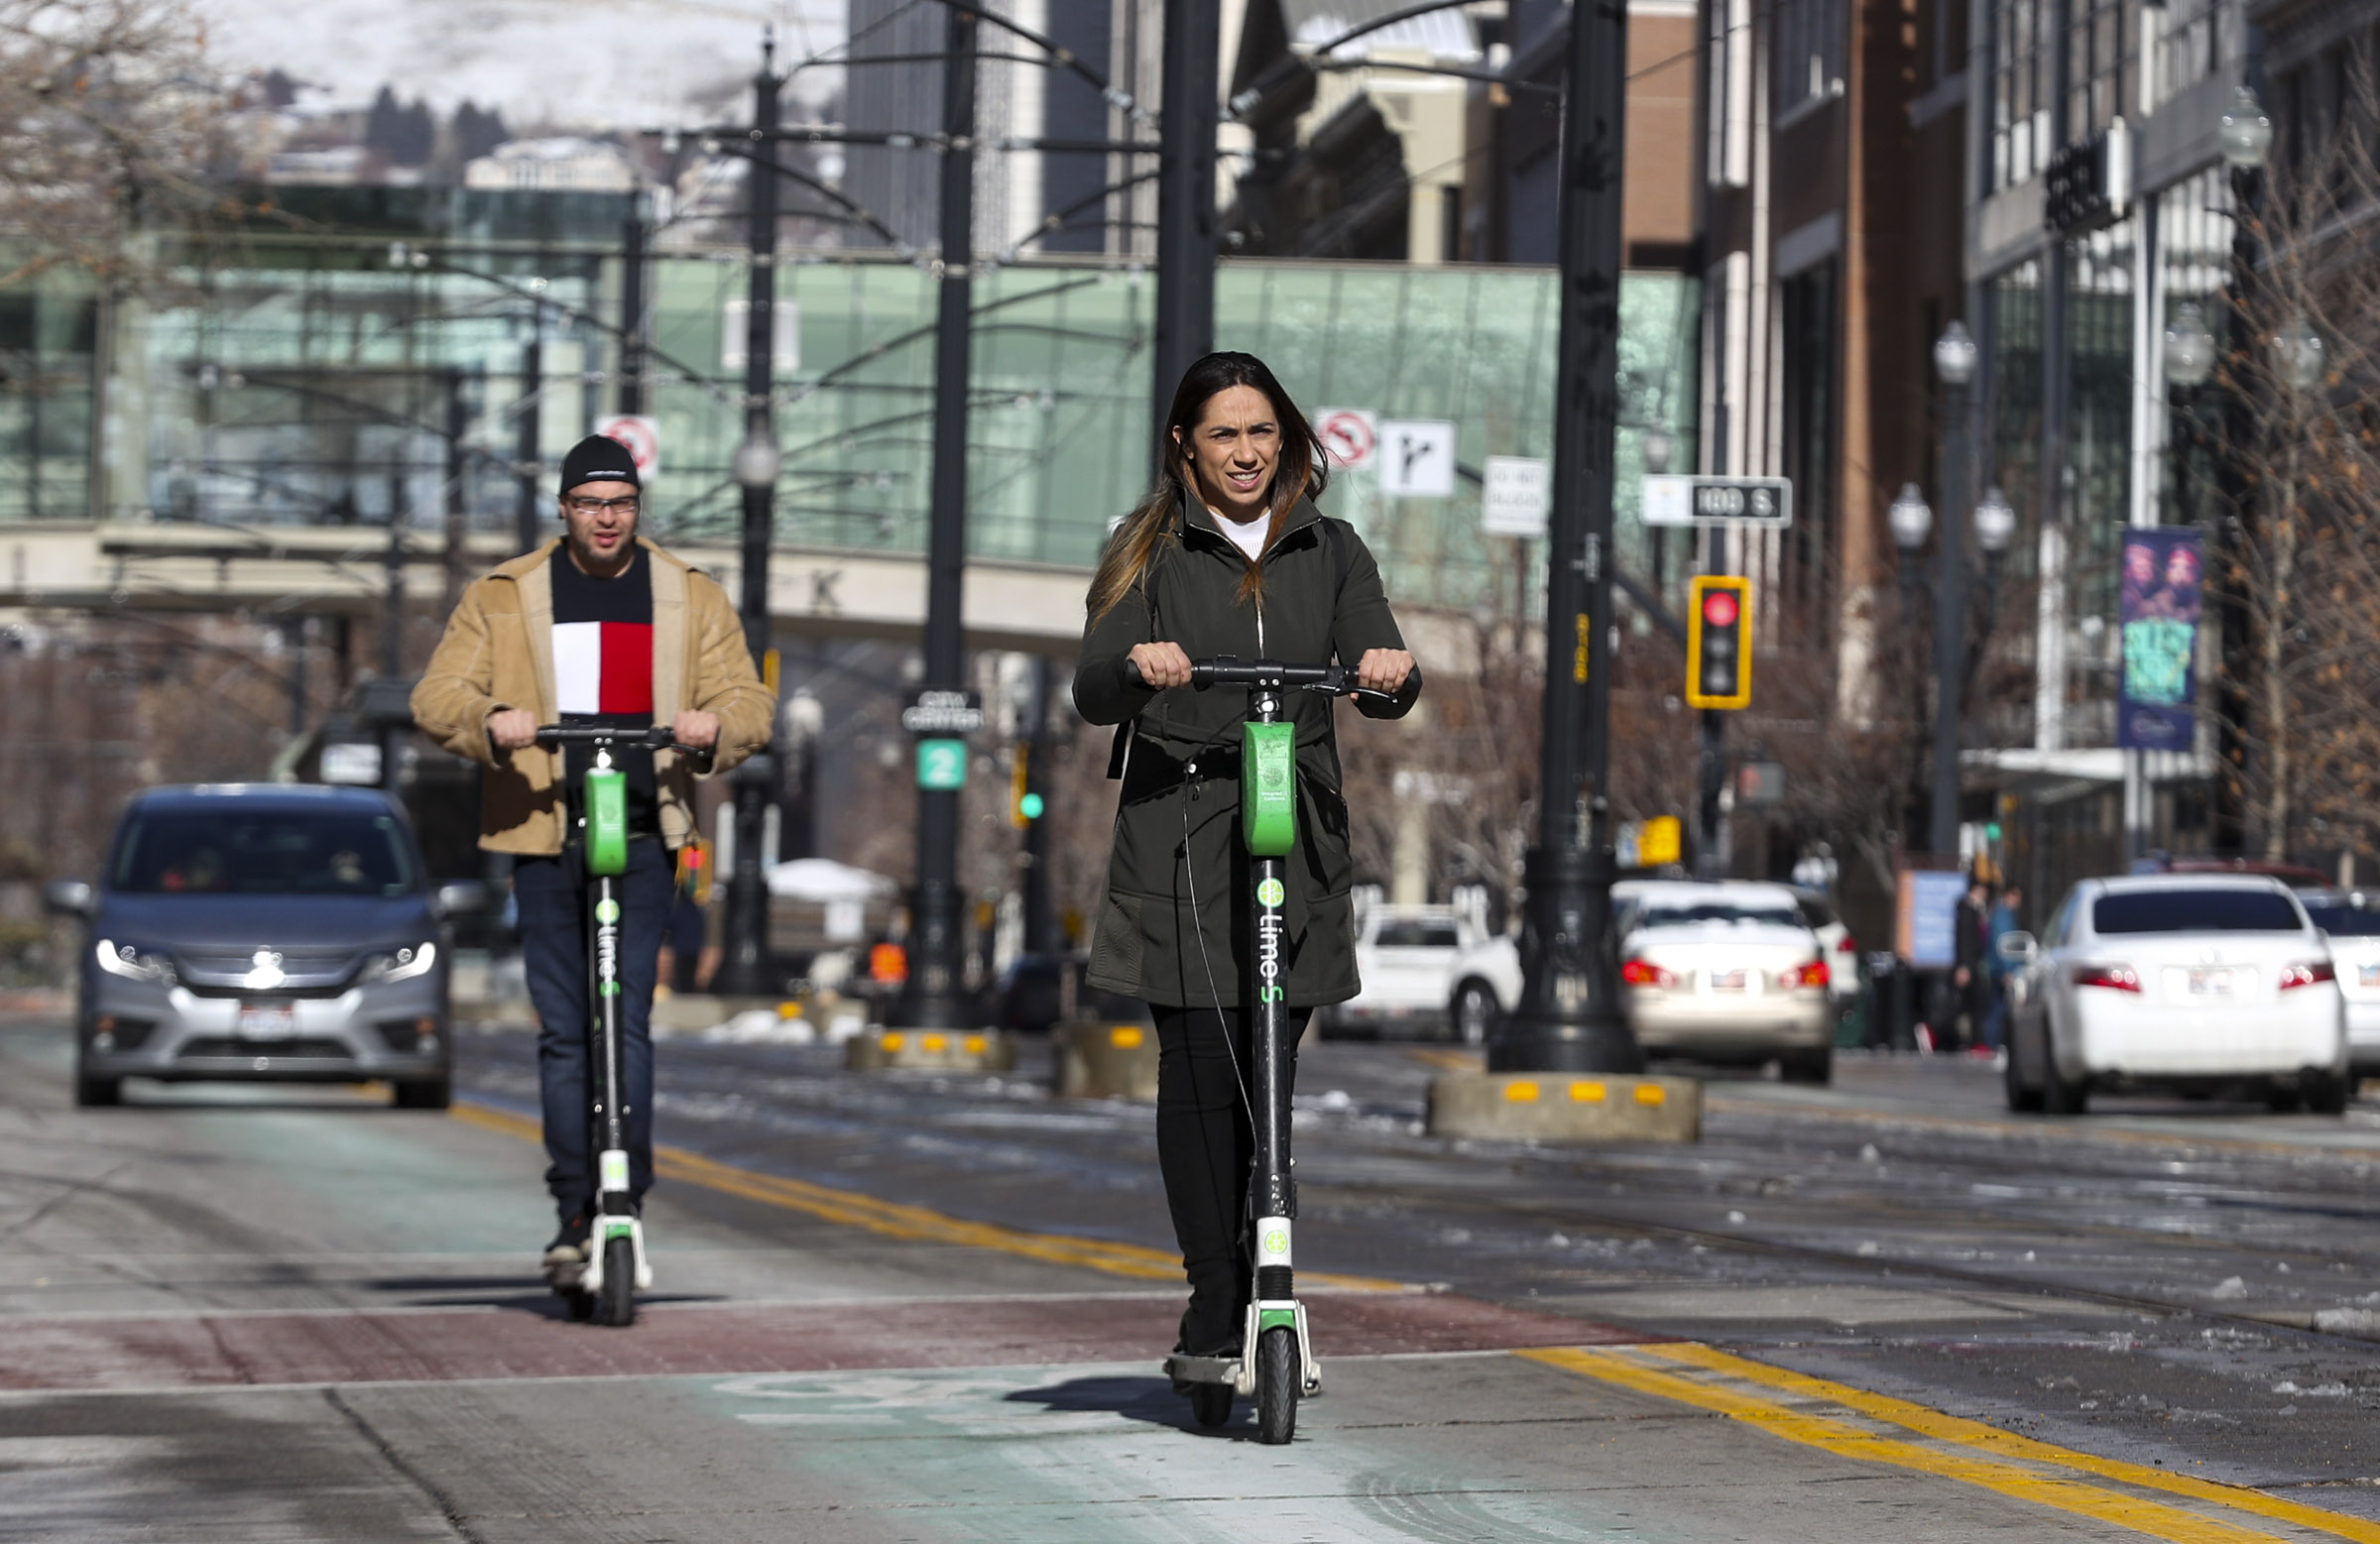 E-scooter riders make their way down Main Street in downtown Salt Lake City on Wednesday, Jan. 15, 2020.